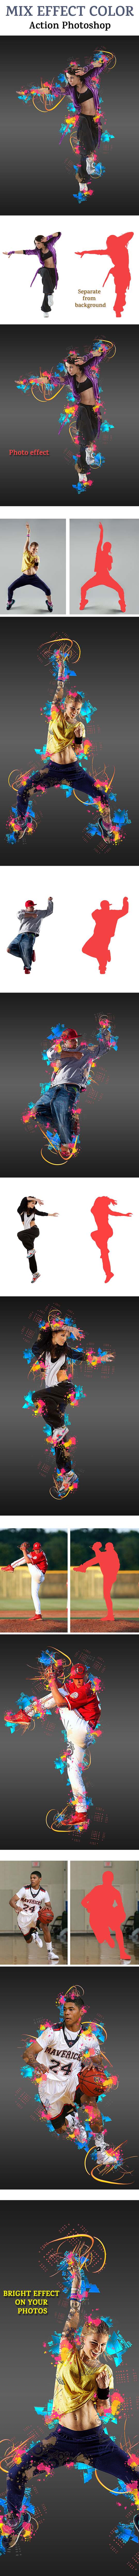 Mix Effect color Action Photoshop - Photo Effects Actions